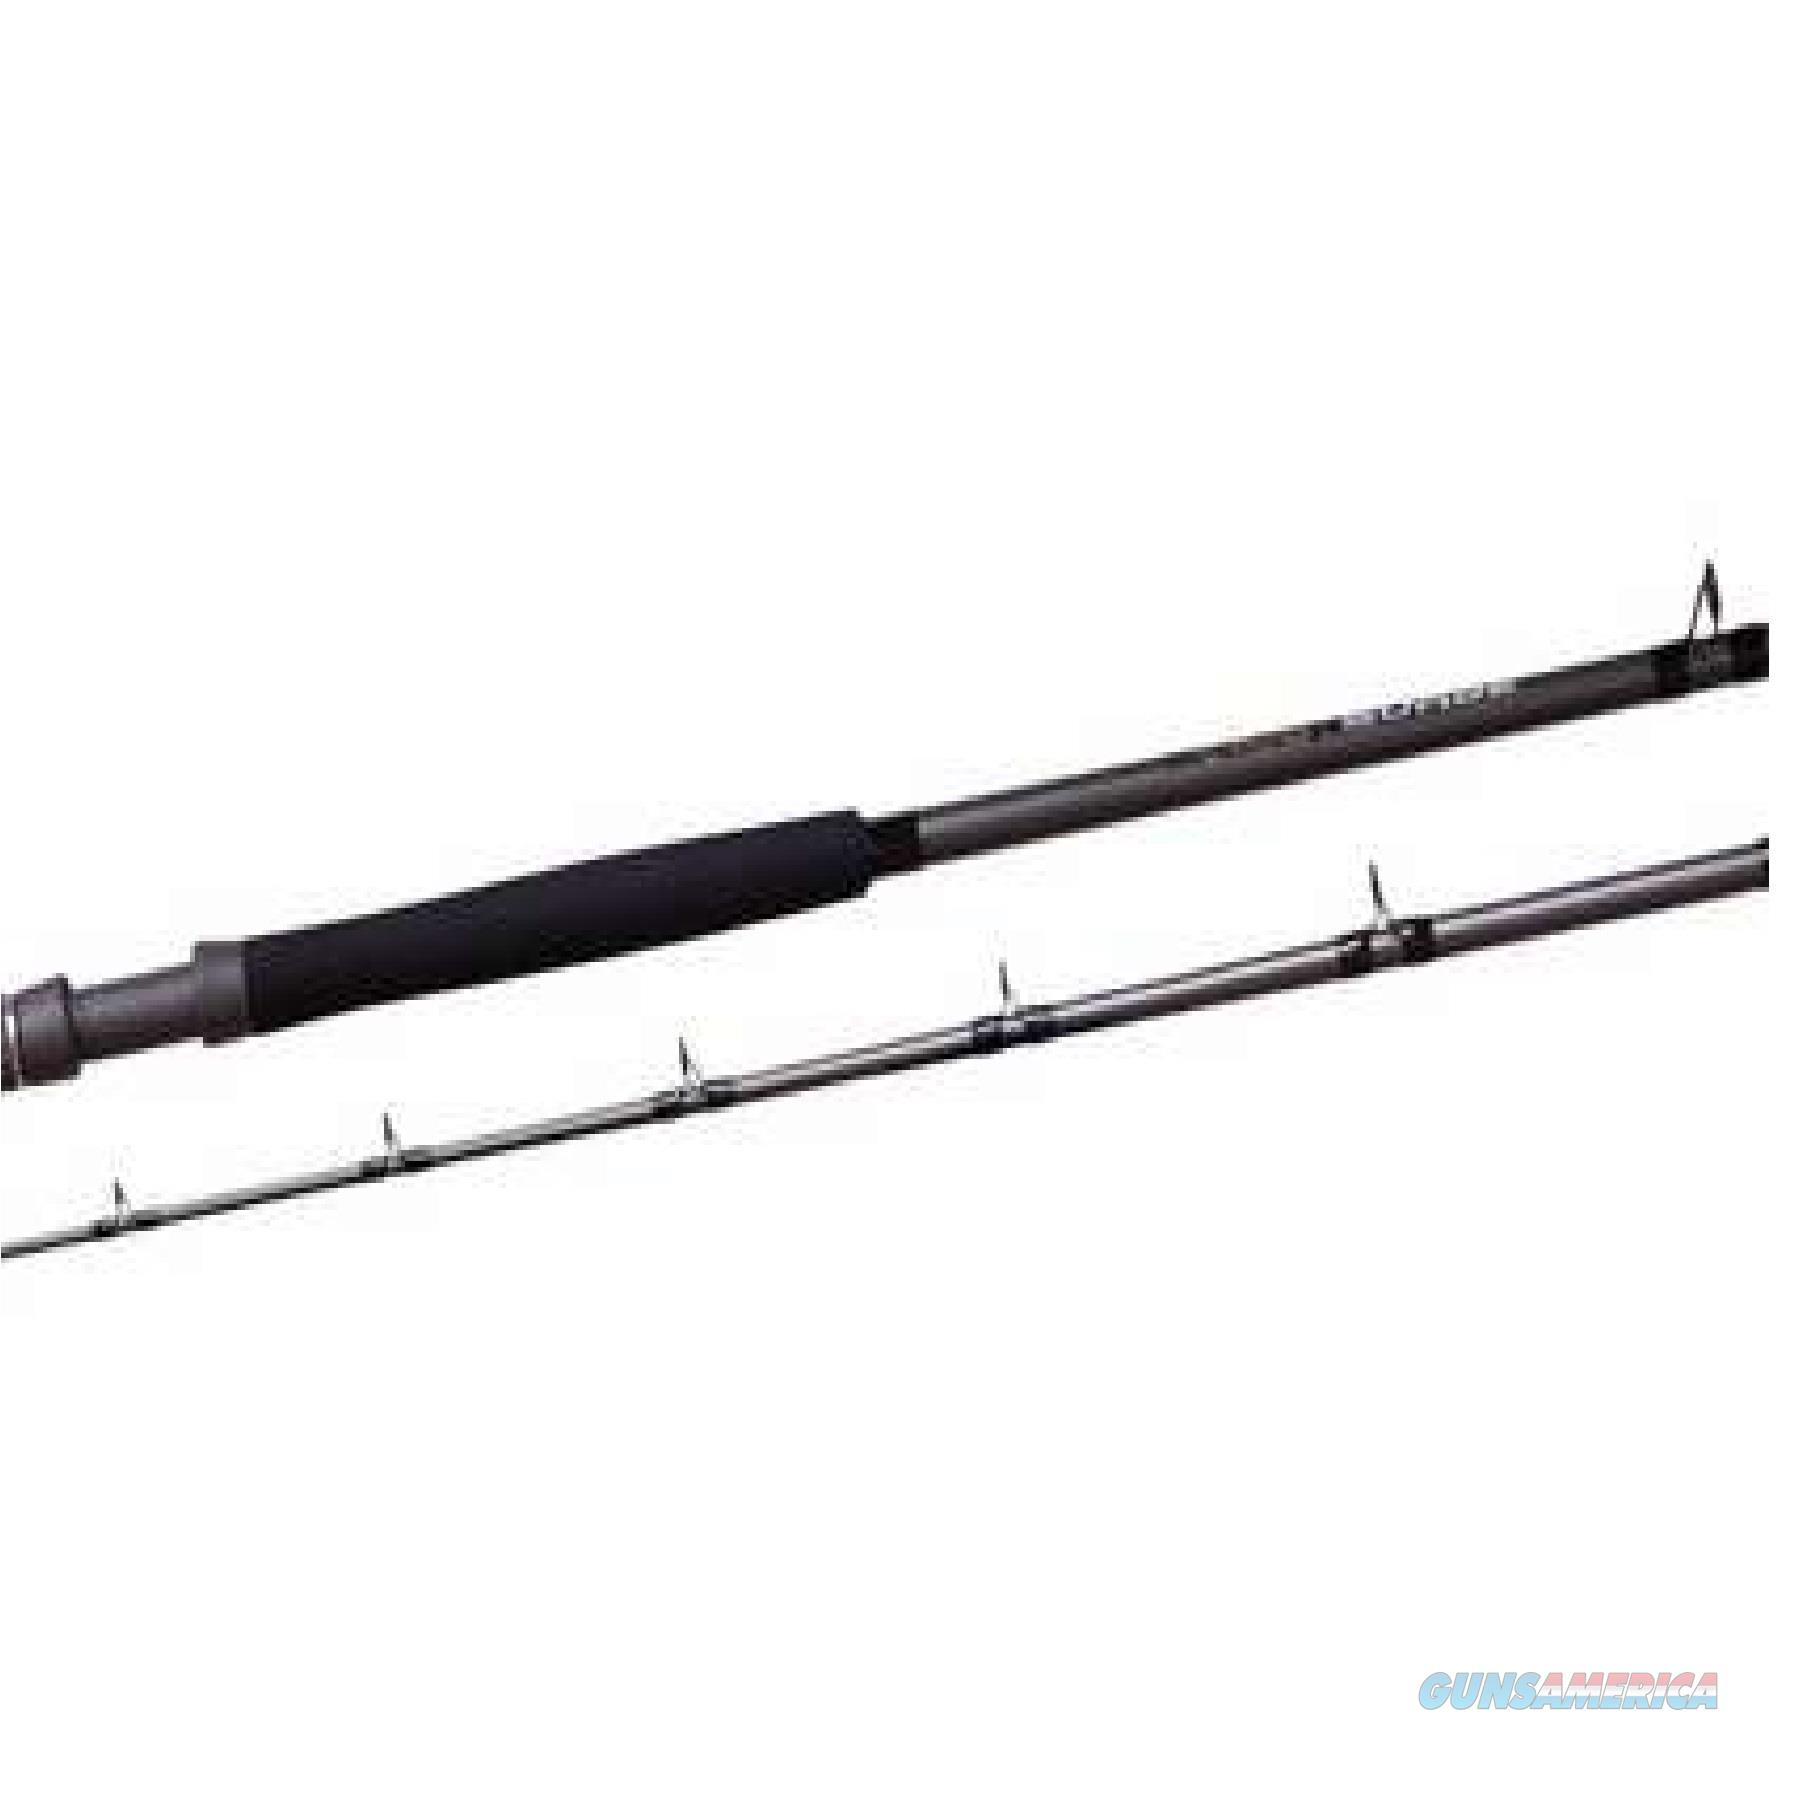 Fin-Nor Surge Saltwater Fishing Rods Fsgc7030 7Ft0in 20-30Lb FSGC7030,,PB3  Non-Guns > Fishing/Spearfishing